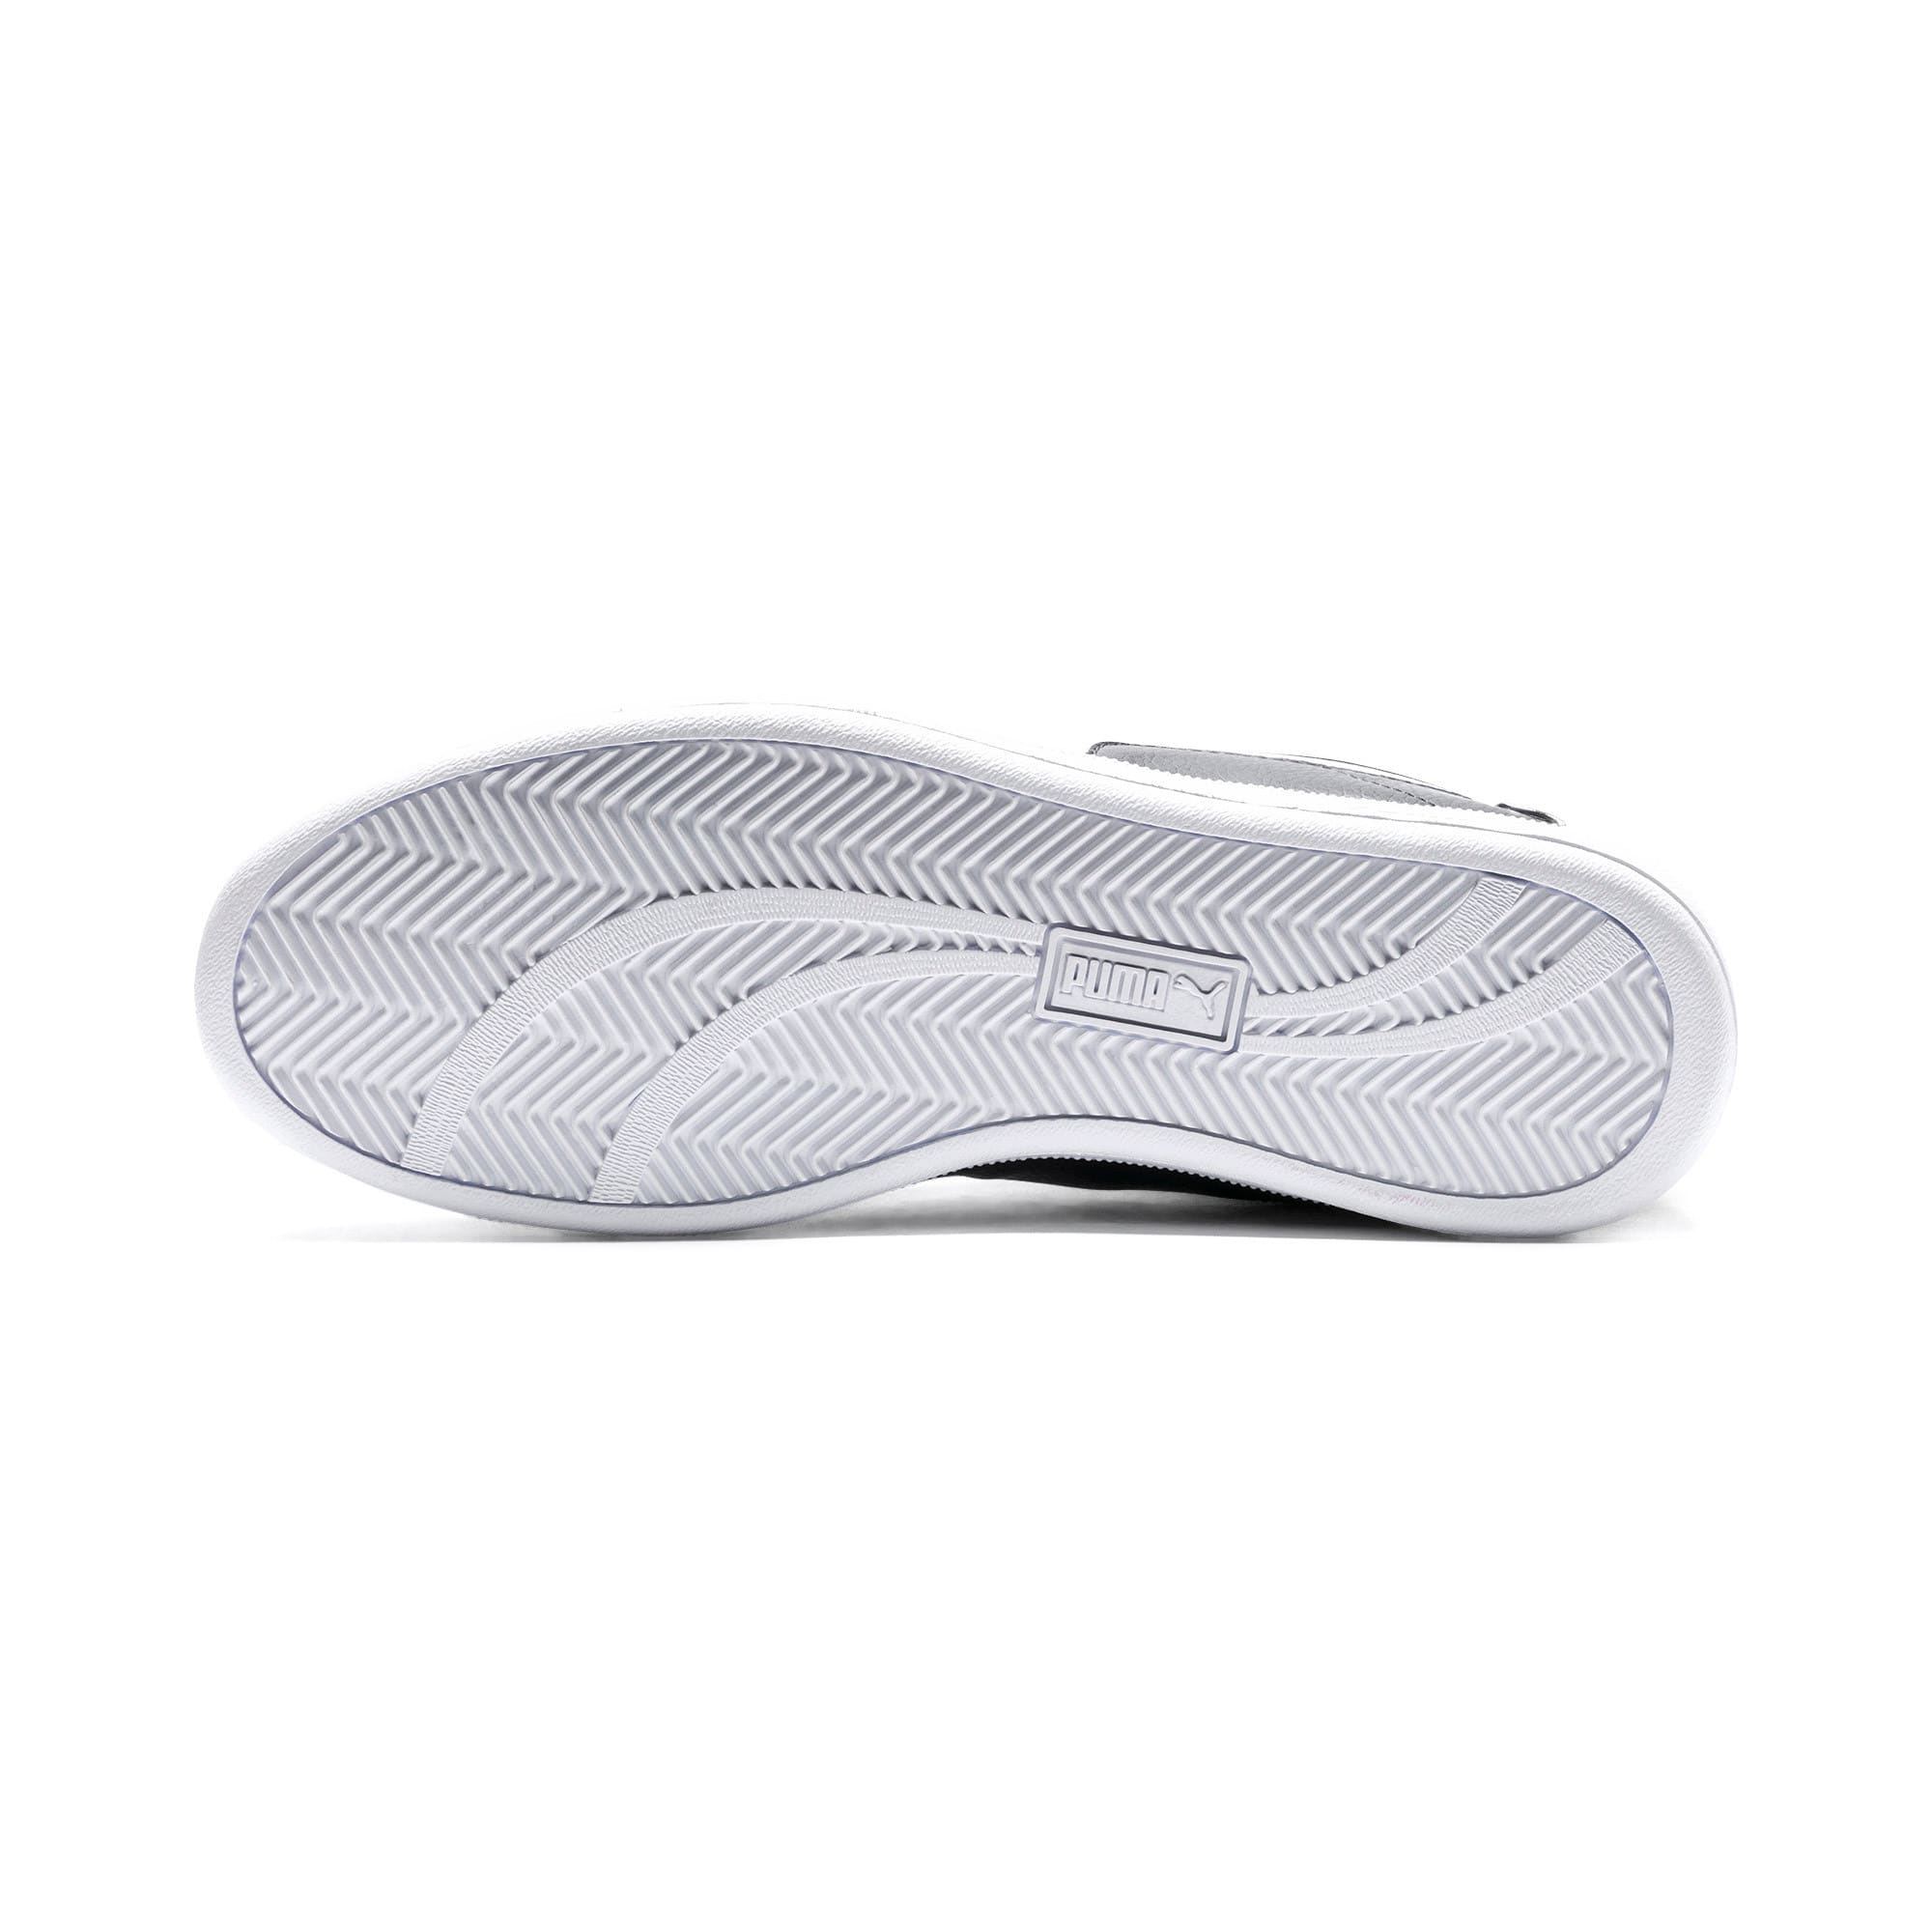 Thumbnail 2 of BMW M Motorsport Court Perf Trainers, Anthracite-Puma White, medium-IND